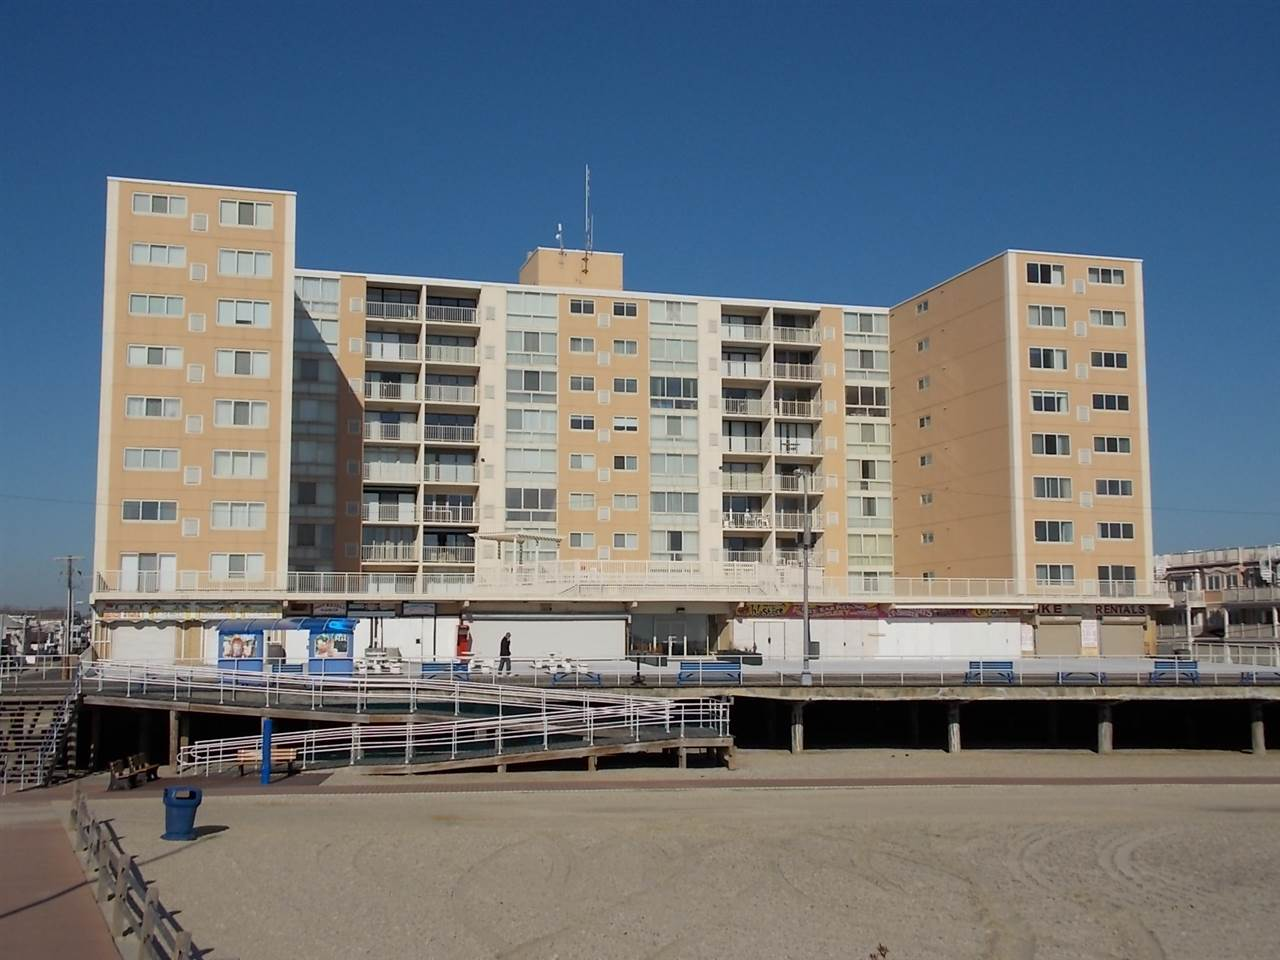 1900, Unit 304 Boardwalk, North Wildwood